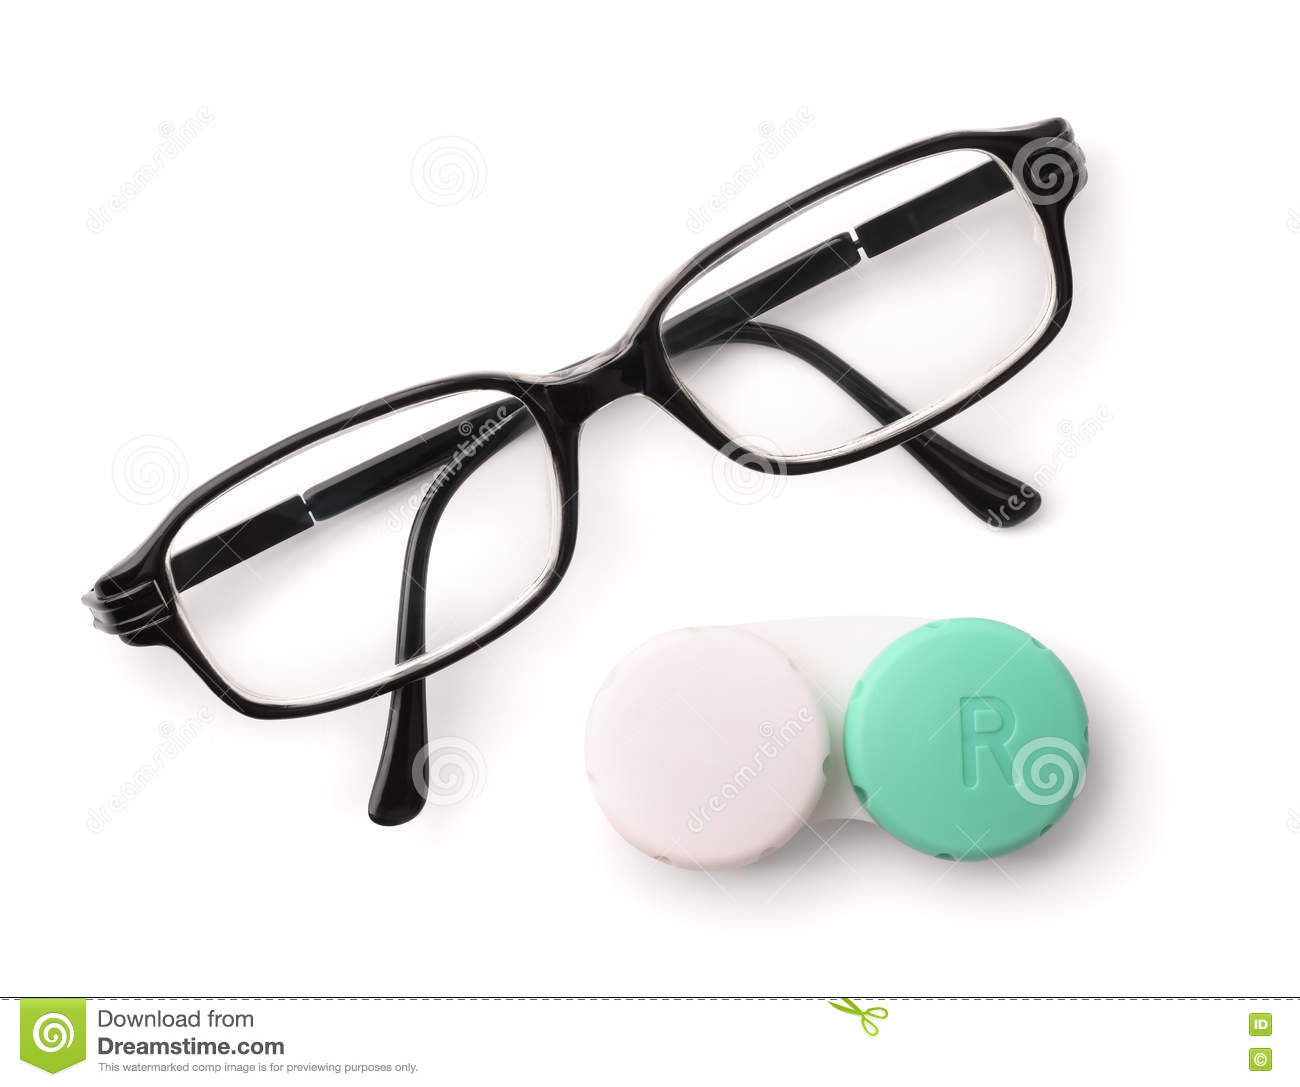 83f8e26583f9 Top View Of Eyeglasses And Eye Contact Lenses Stock Photo - Image of ...